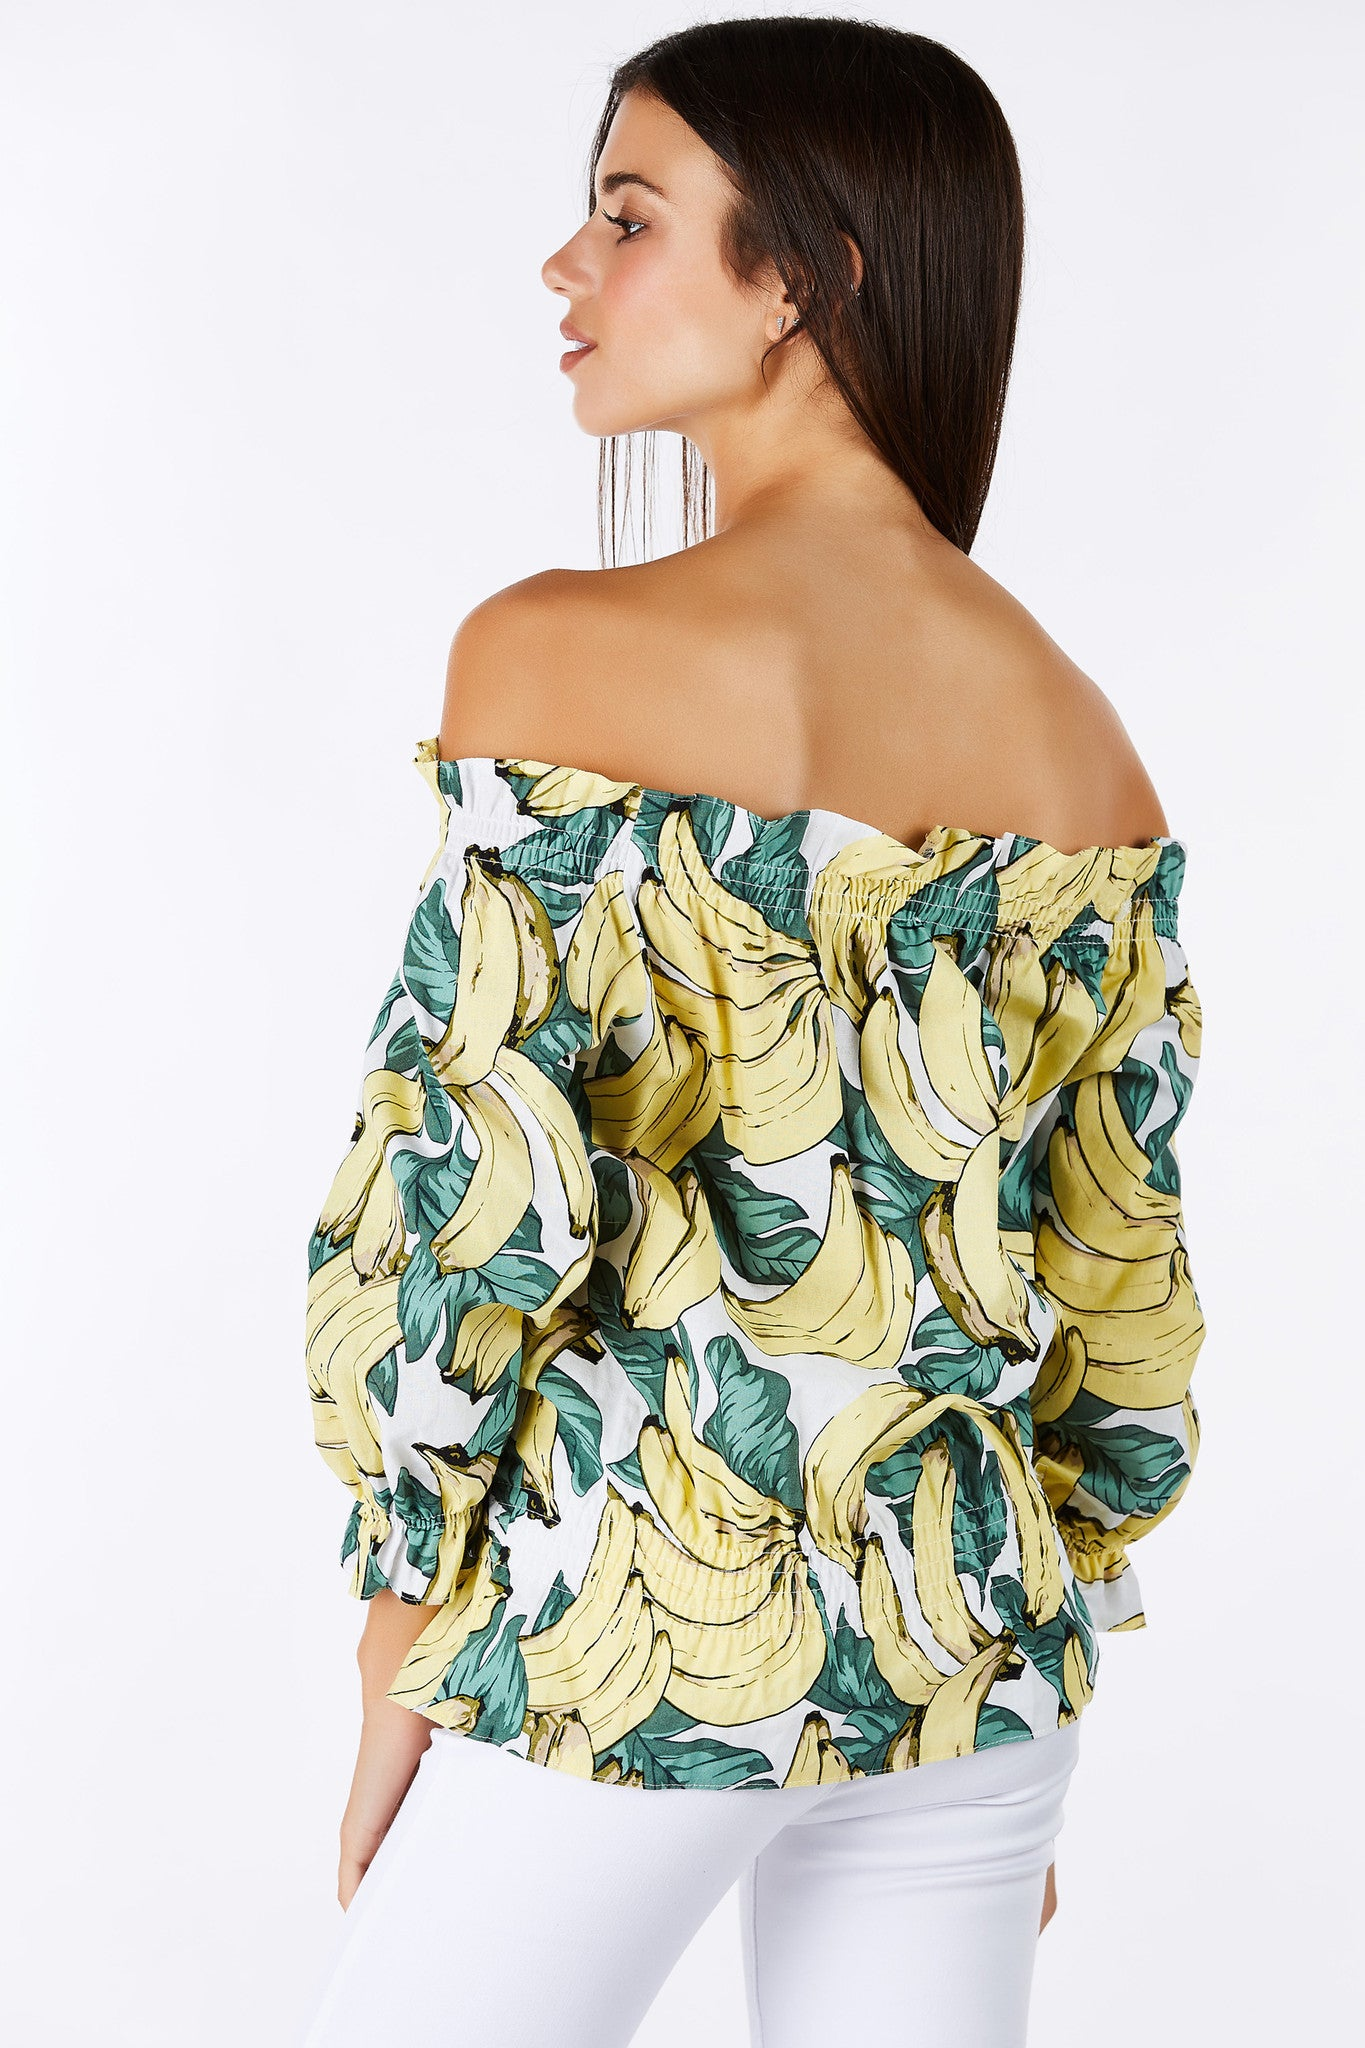 Here's the perfect Summer top with a fun pop of color. Bright and colorful banana prints through. Off shoulders with aweome elastic bands for a comfortable fit. Has great structure to bring more dimension to your outfit.